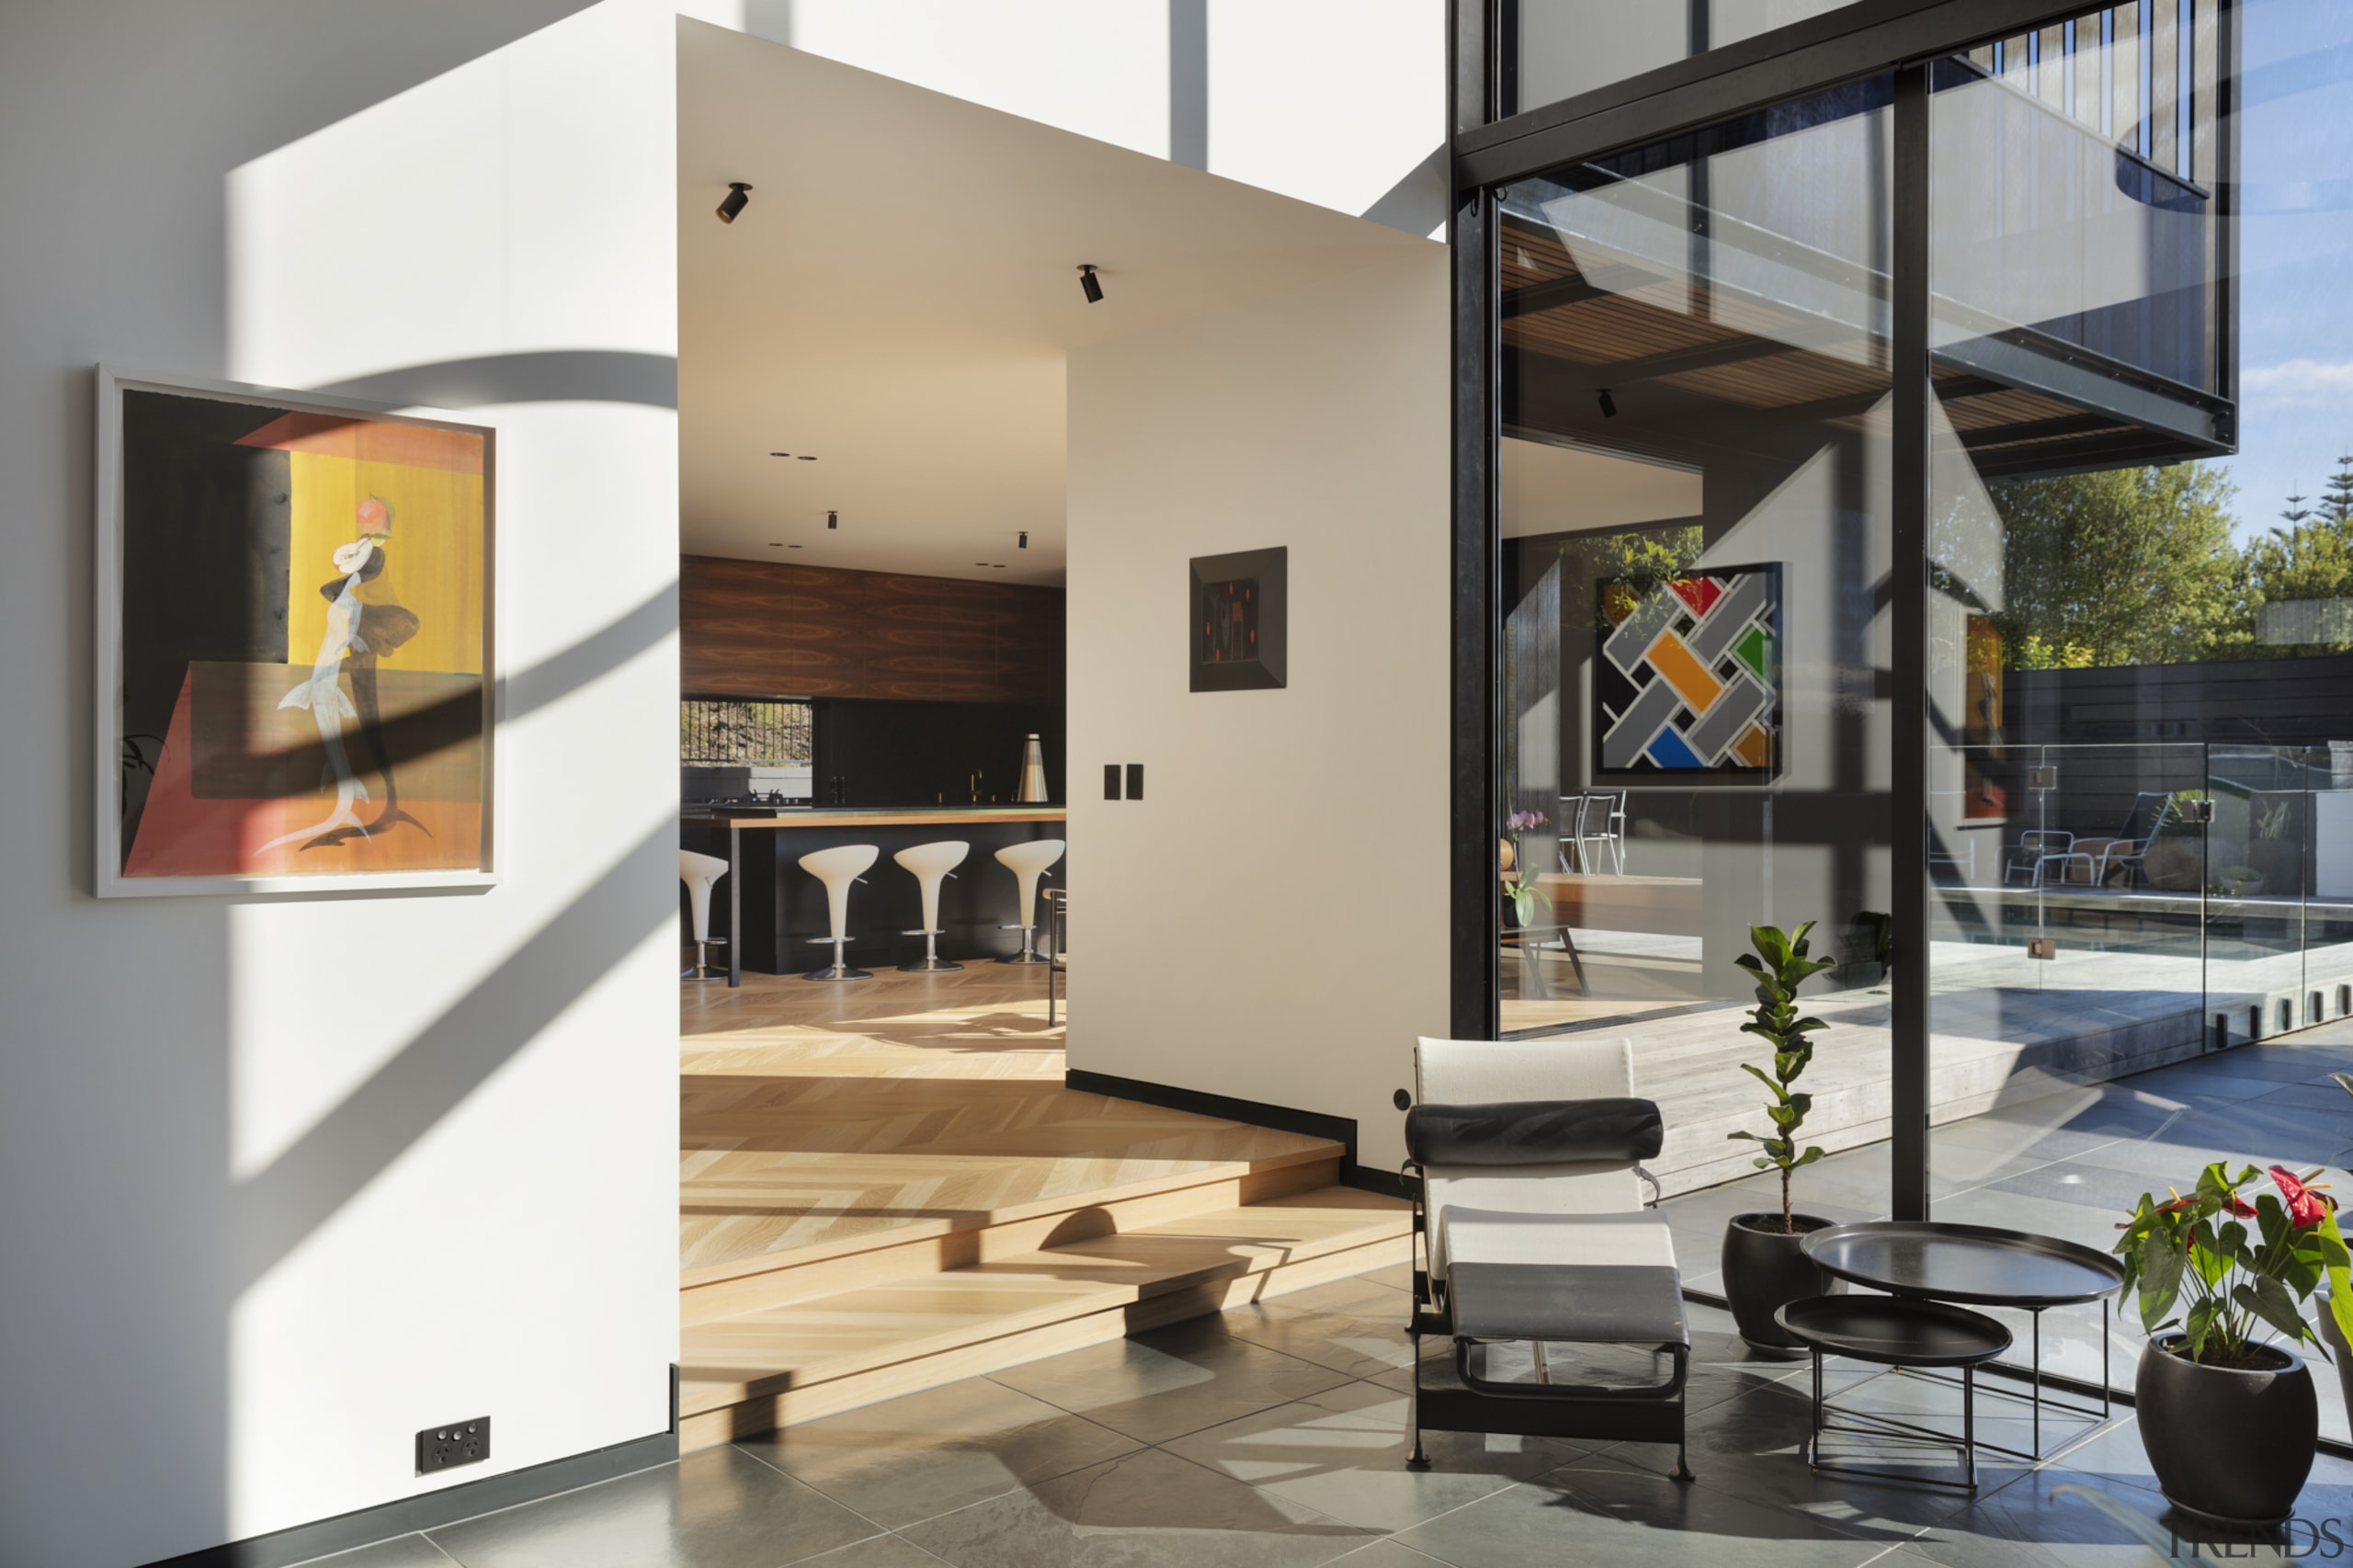 1970's home becomes a modern entertainer's dream - architecture, building, ceiling, design, door, facade, floor, flooring, furniture, home, house, interior design, living room, loft, property, real estate, room, window, gray